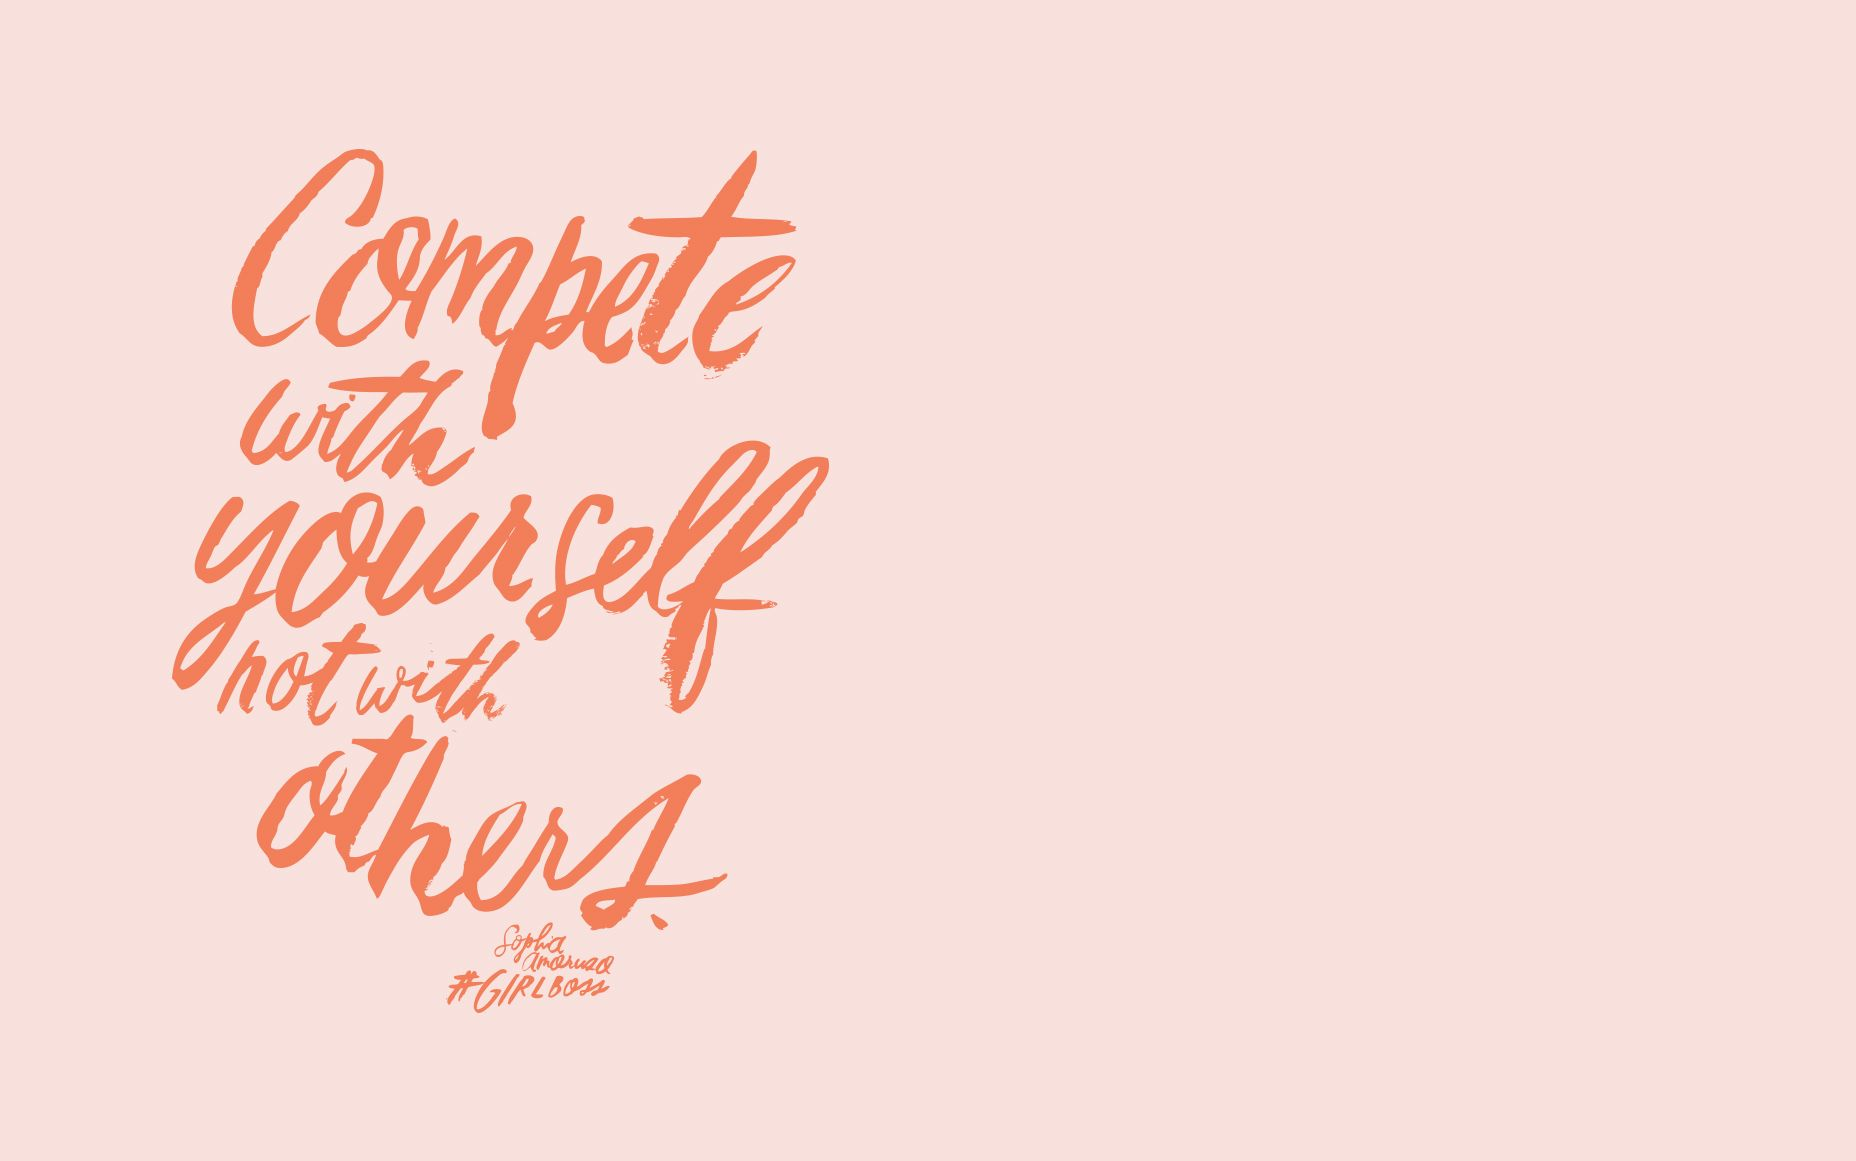 Girlboss Beyourself Girlpower Wonderwoman Desktop Wallpaper Quotes Desktop Background Quote Inspirational Desktop Wallpaper